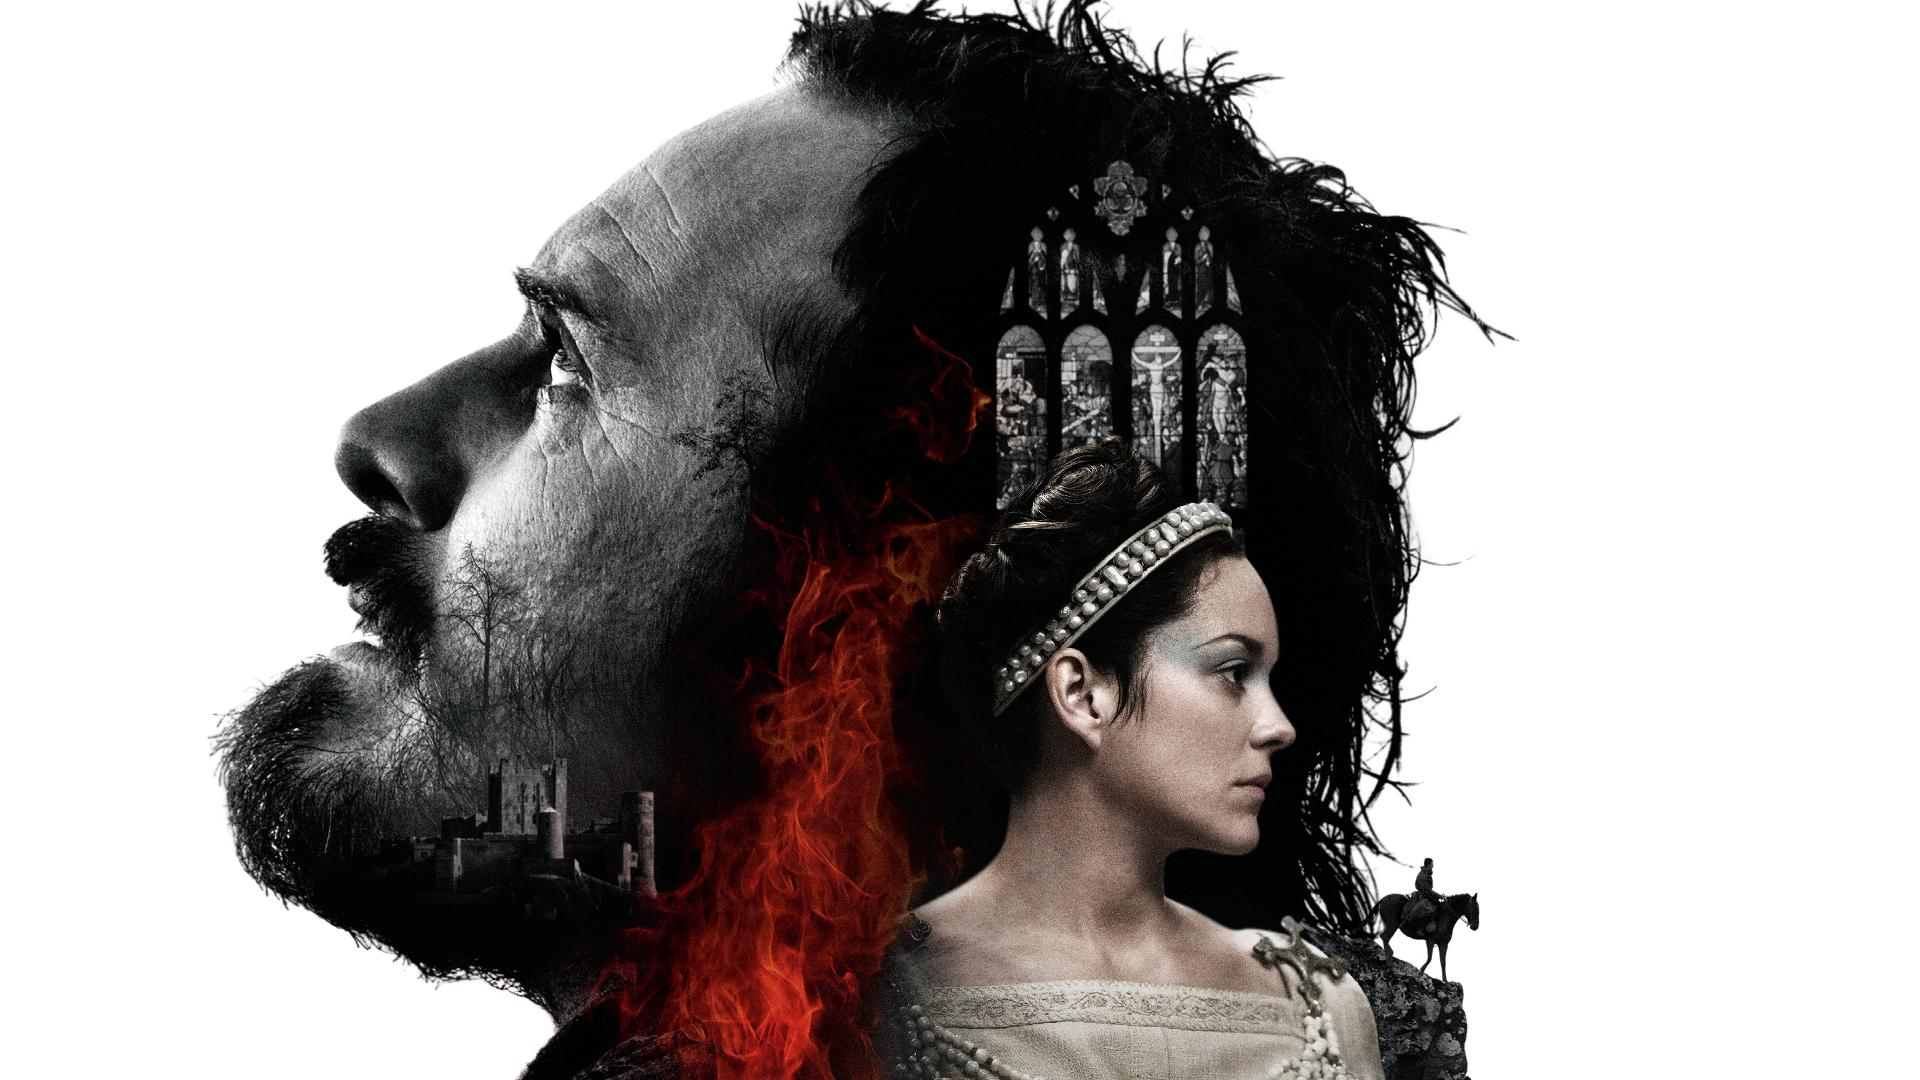 the overpowering ambition of macbeth paved his demise Macbeth and feminism dr caroline cakebread shakespeare's macbeth is a tragedy that embodies the polarities of male and female power, a play which seems to dramatize the deep divisions that characterize male-female relationships in all his plays.